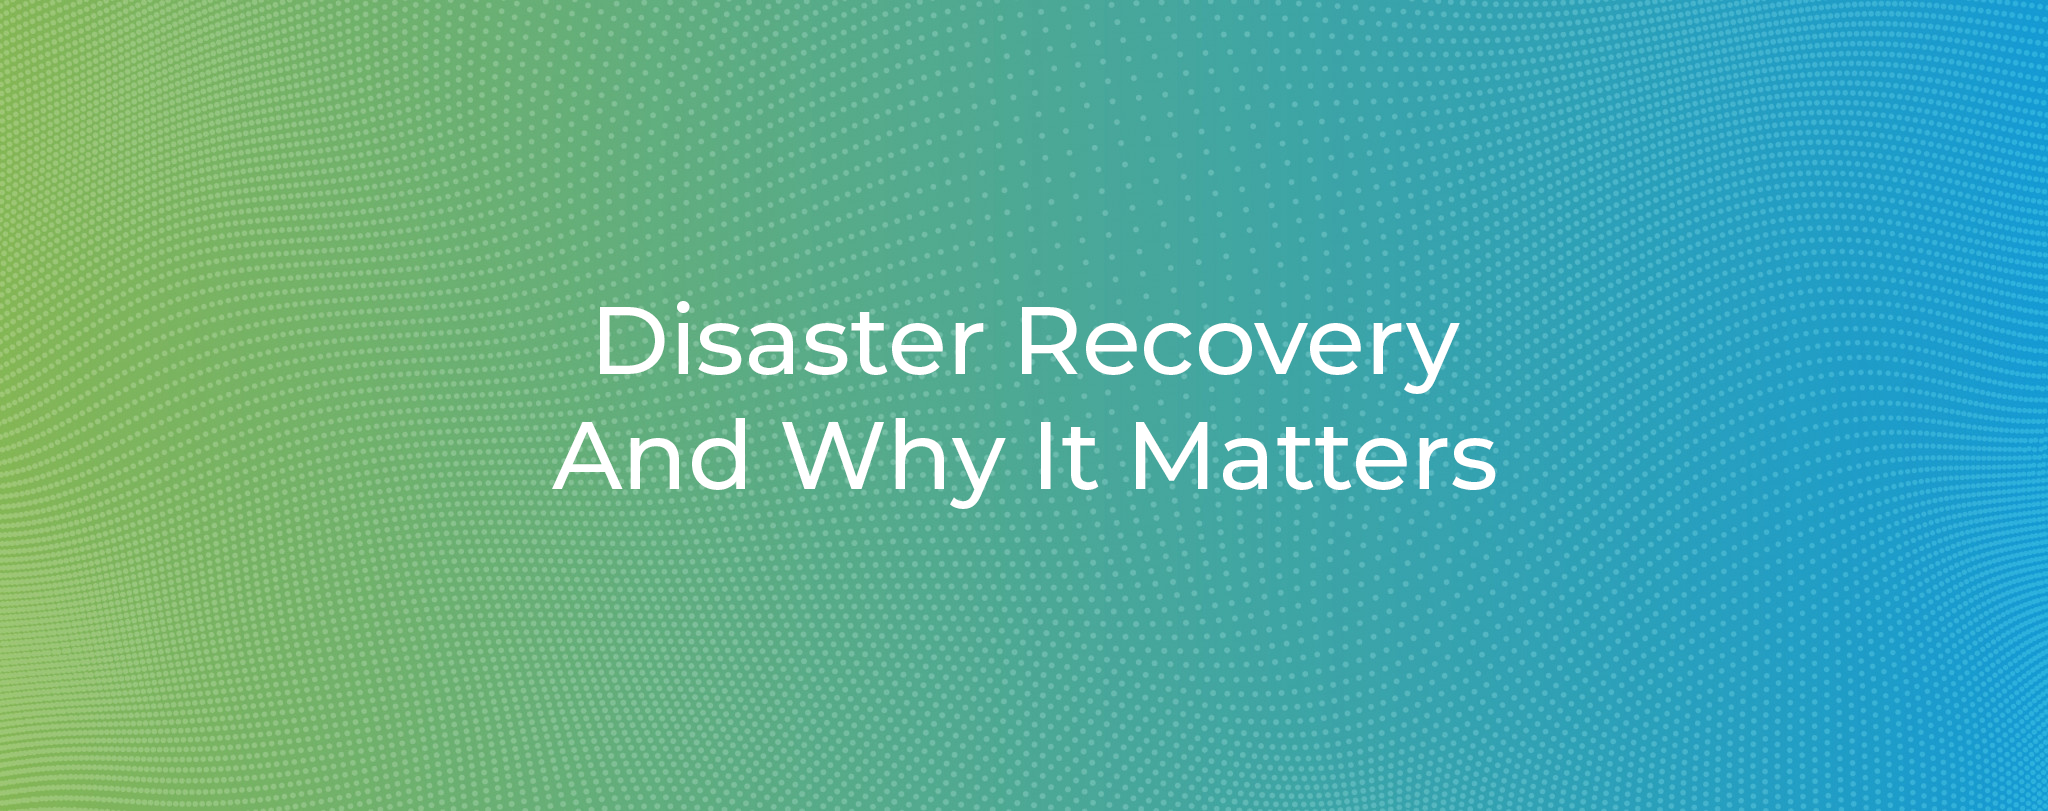 Disaster Recovery And Why It Matters1